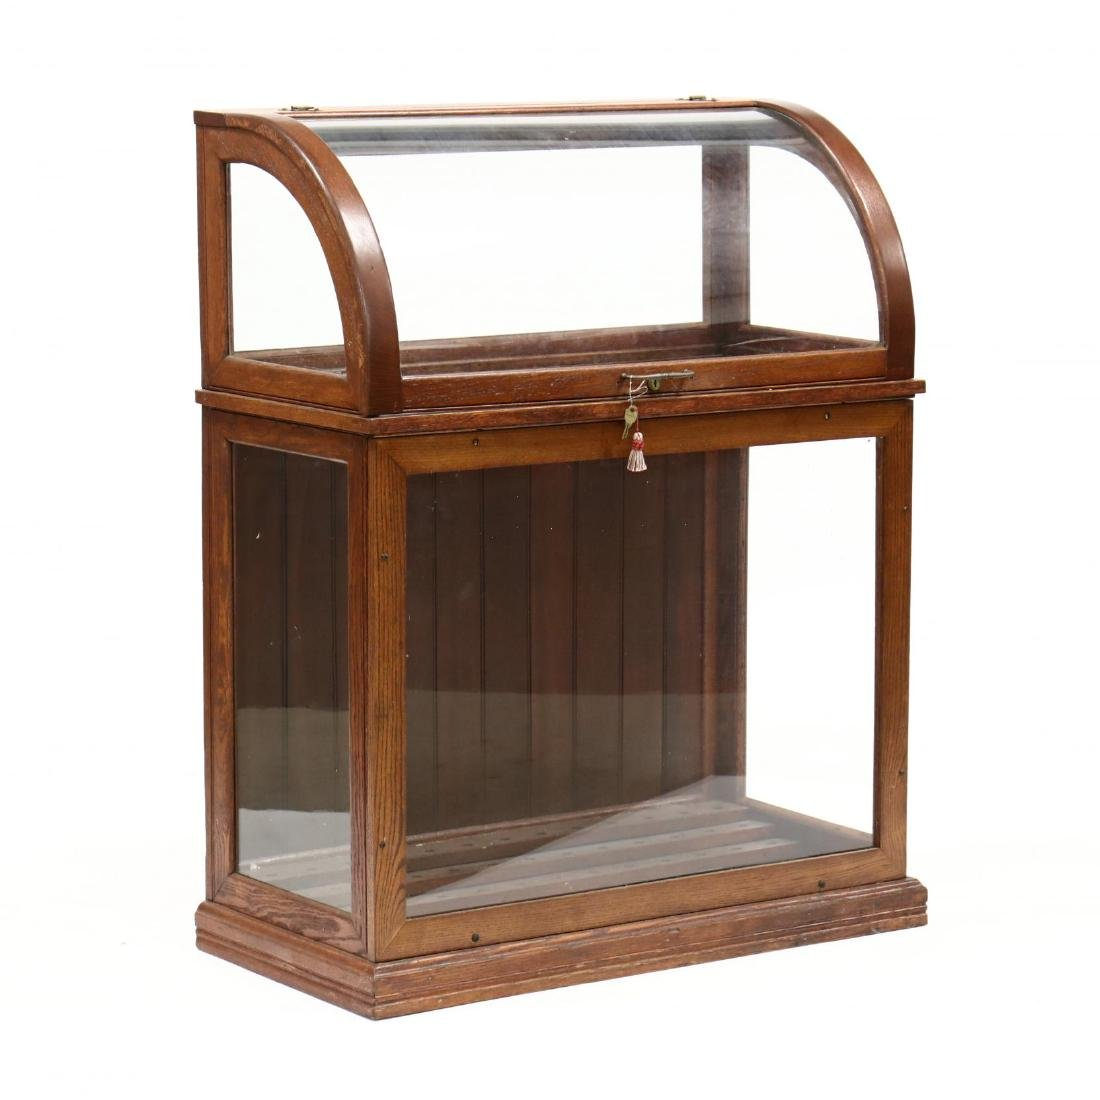 Antique Oak and Glass Walking Cane Display Case